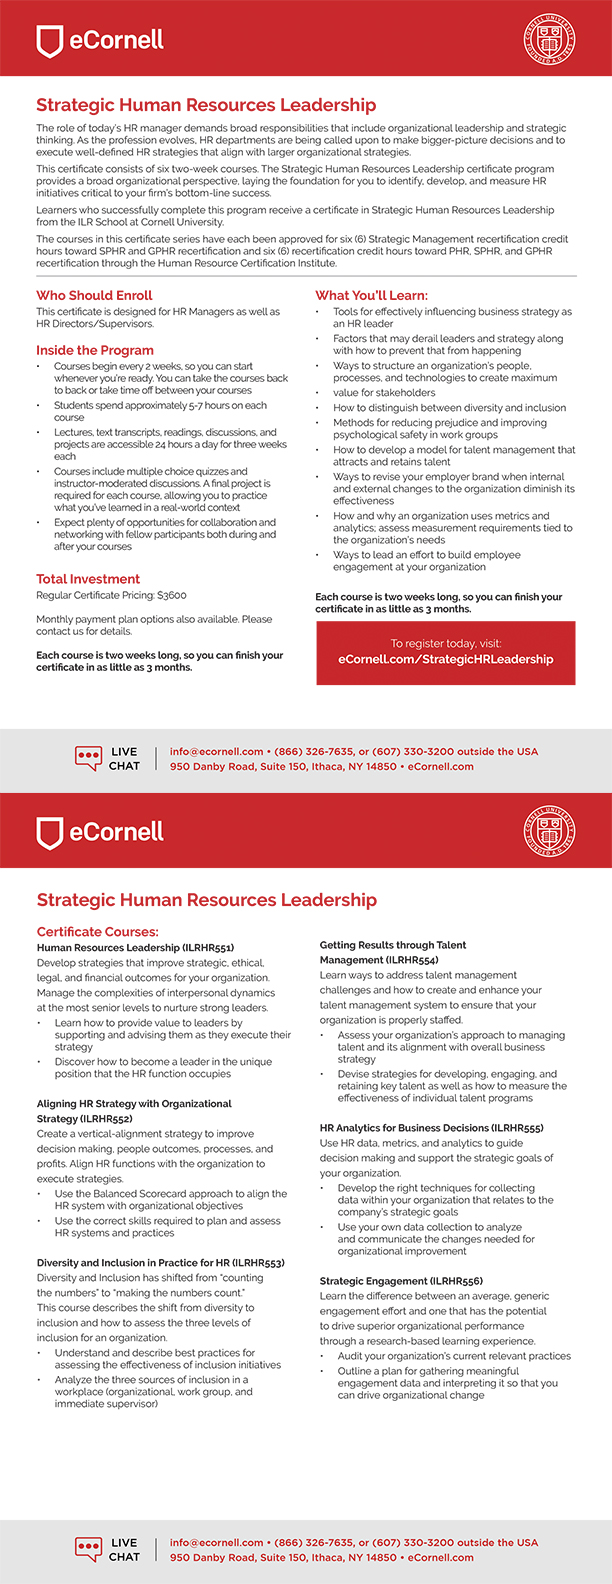 Strategic Human Resources Leadership Flyer